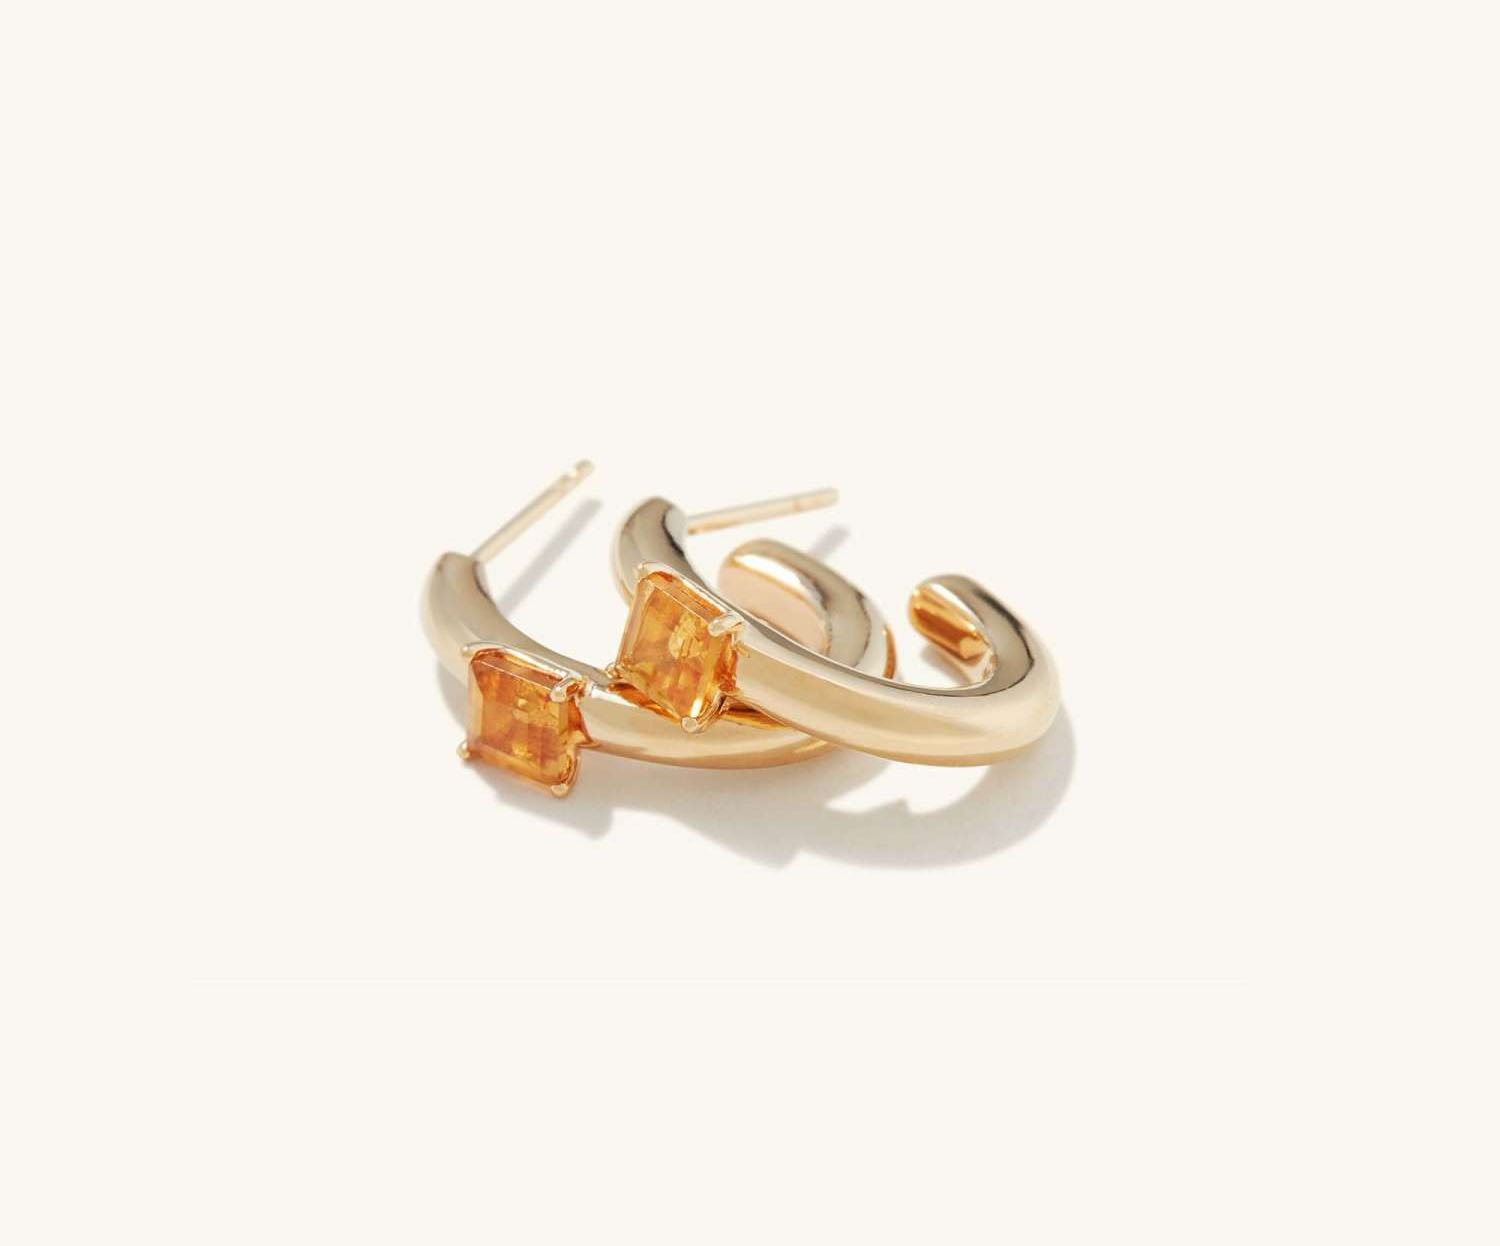 Hoop-shaped gold wedding earrings with a citrine stone accent